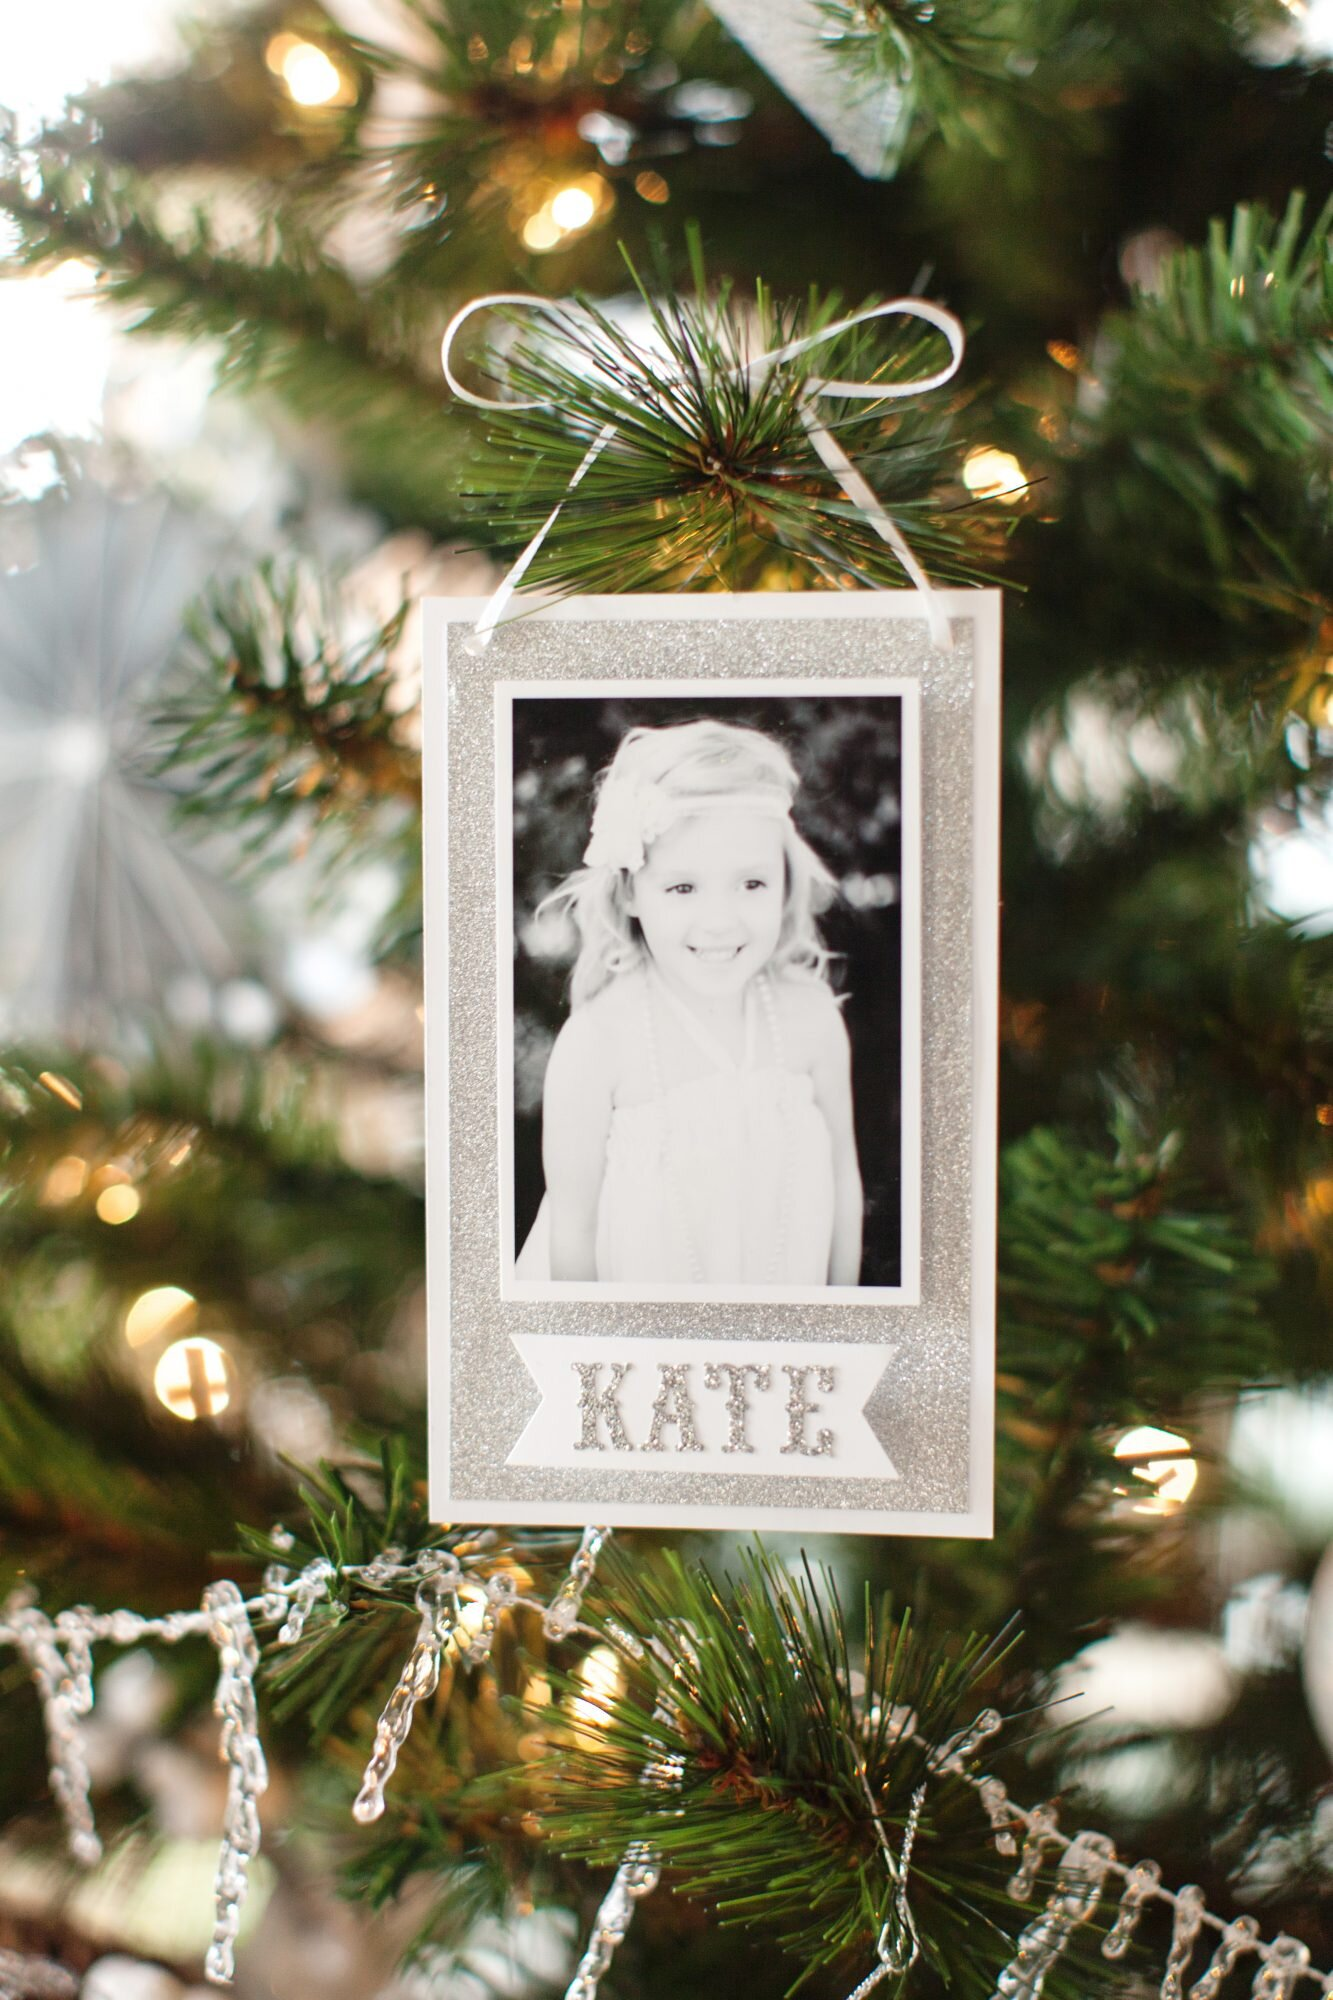 Christmas Ornaments Diy.8 Adorable Diy Ornaments For Displaying Your Family Photos